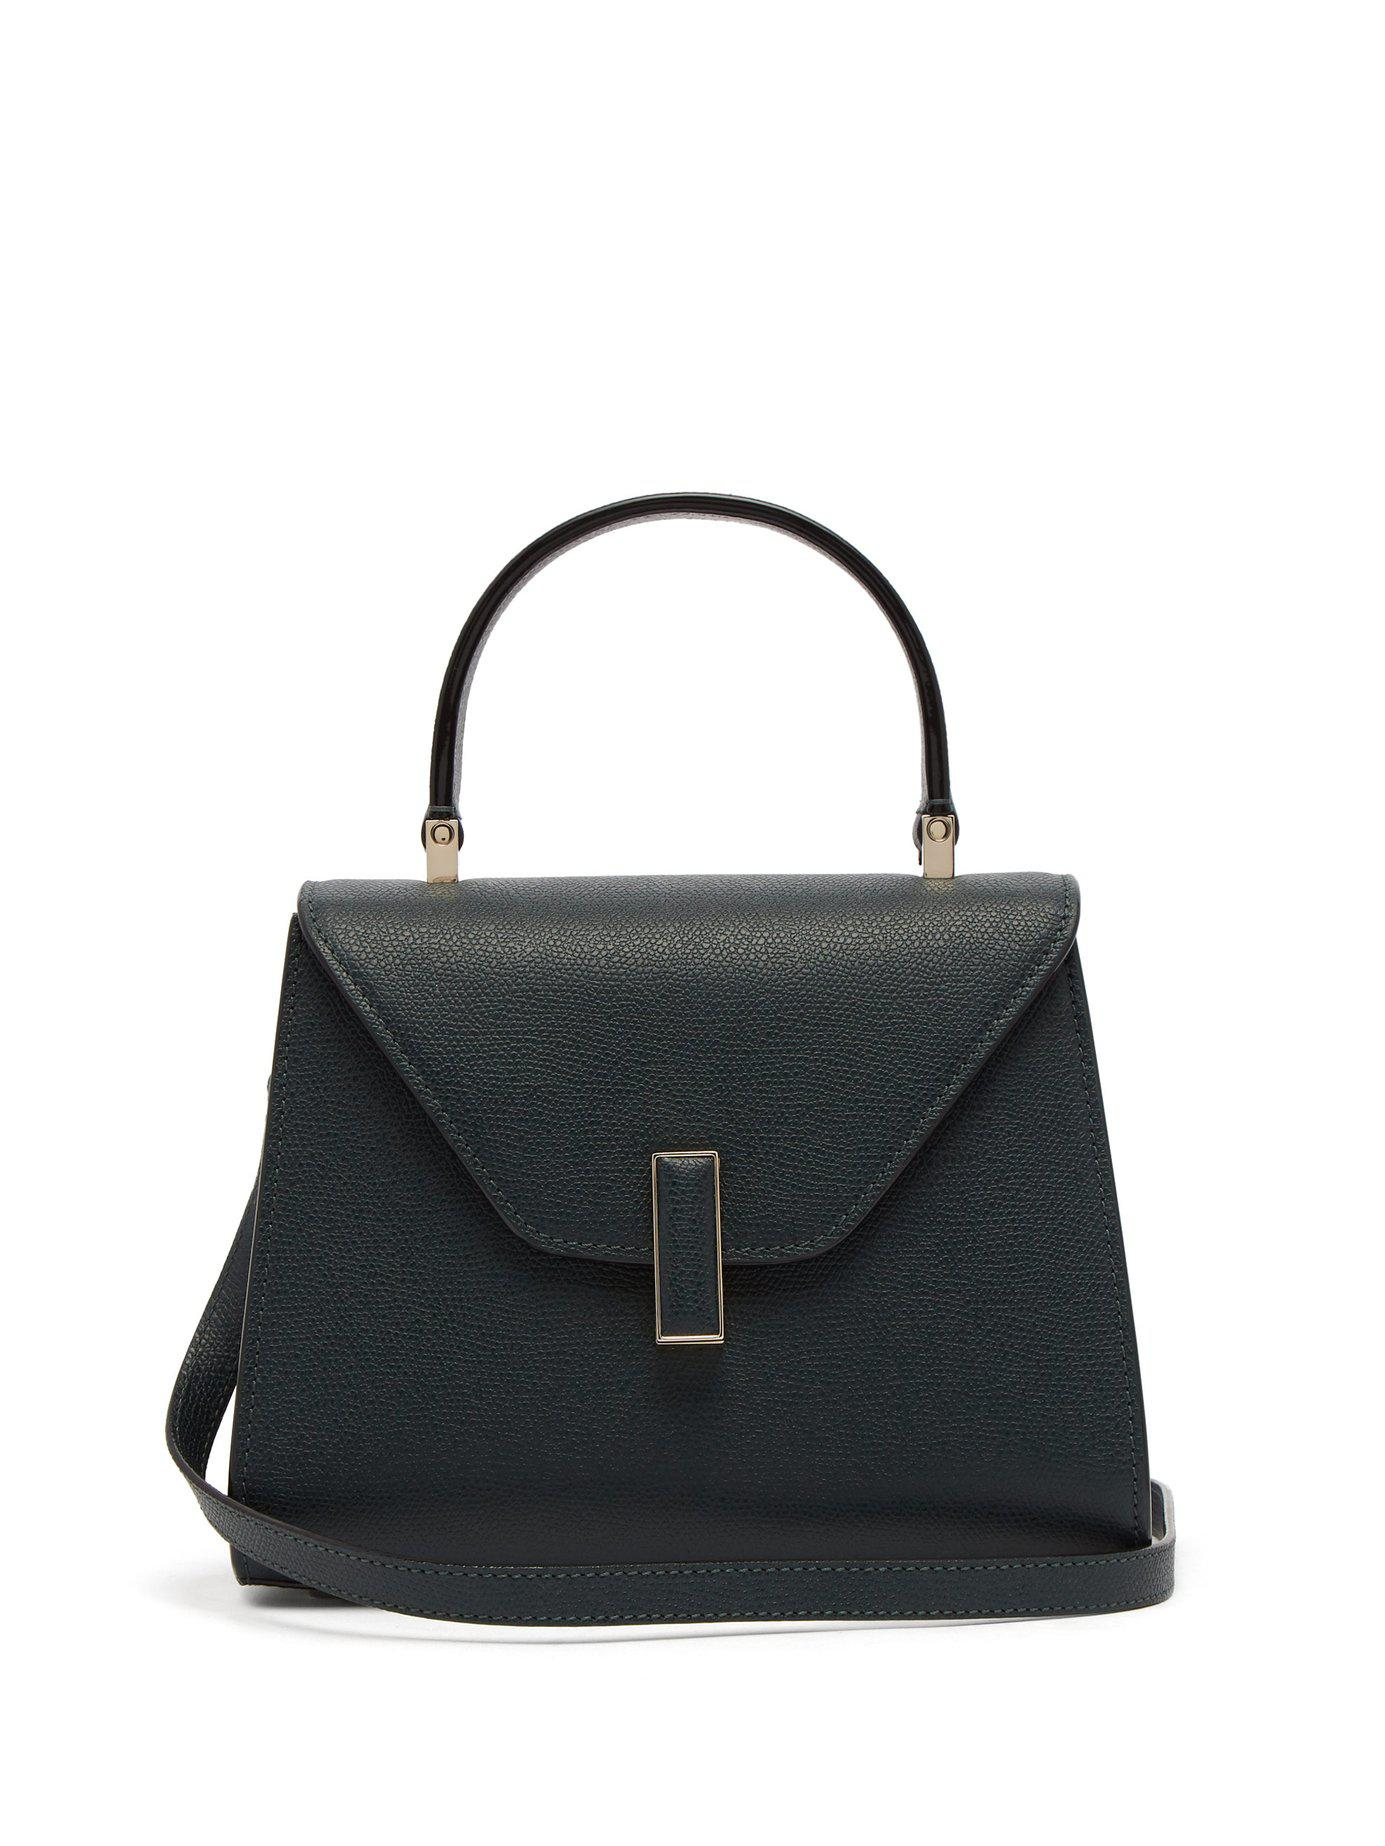 9e699c05f5 Valextra - Green Iside Mini Grained Leather Bag - Lyst. View fullscreen